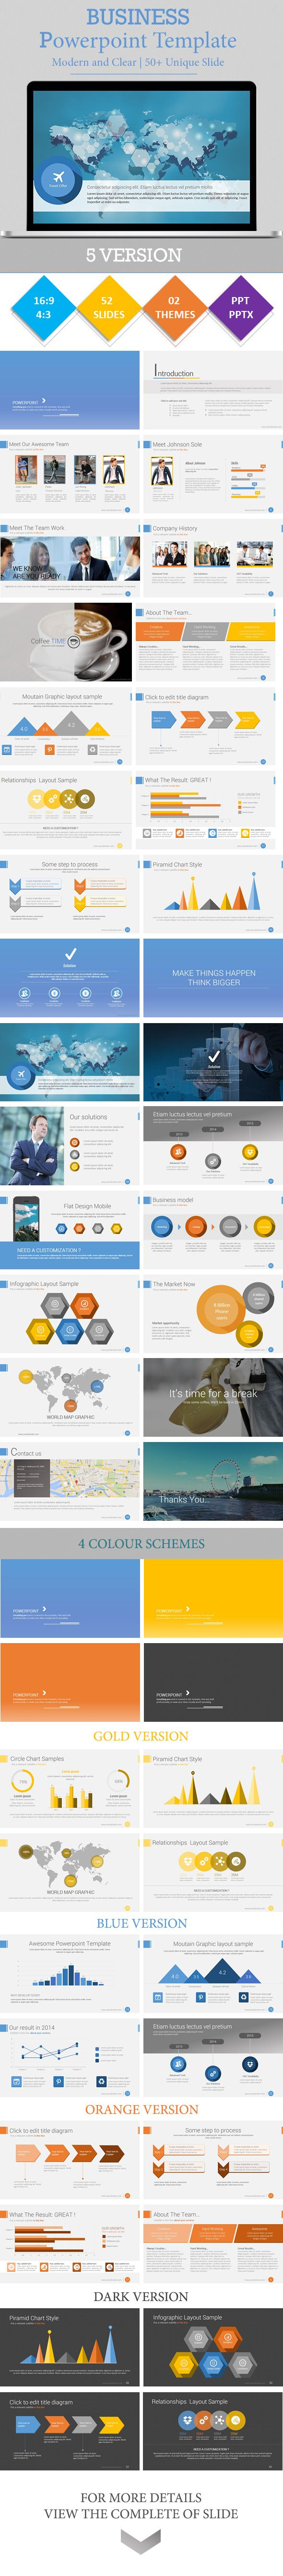 BUSINESS - Powerpoint Presentation Template (Powerpoint Templates) Image 20Preview